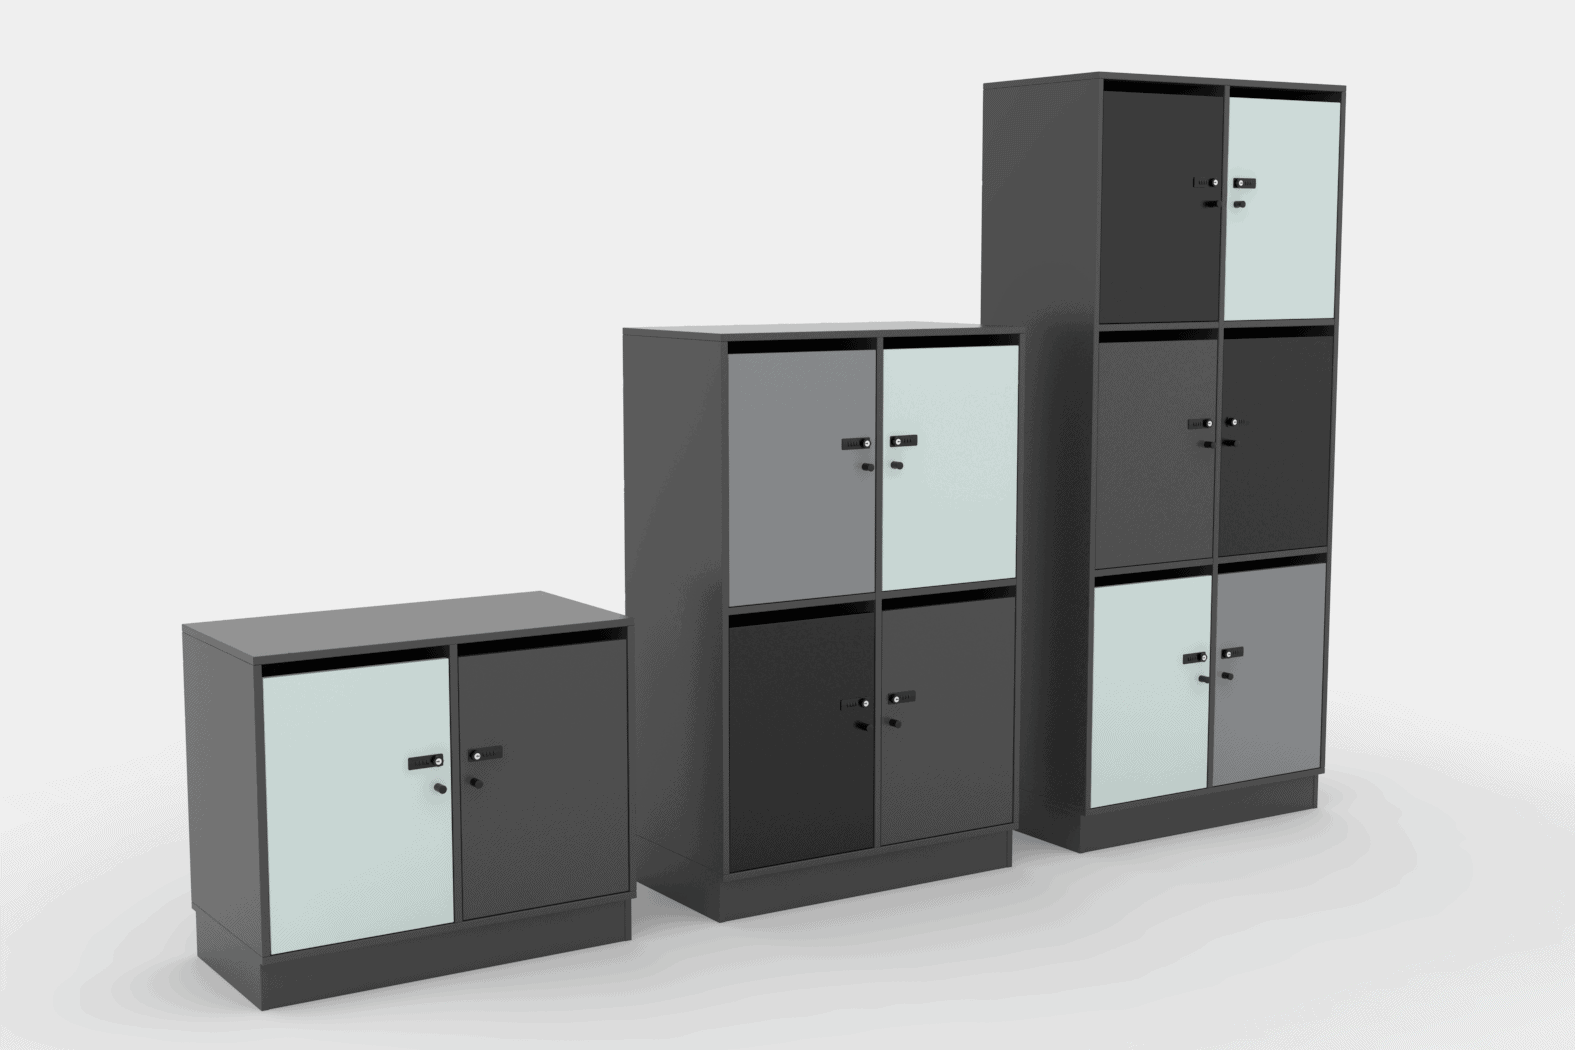 Lockers_brevindkast_02